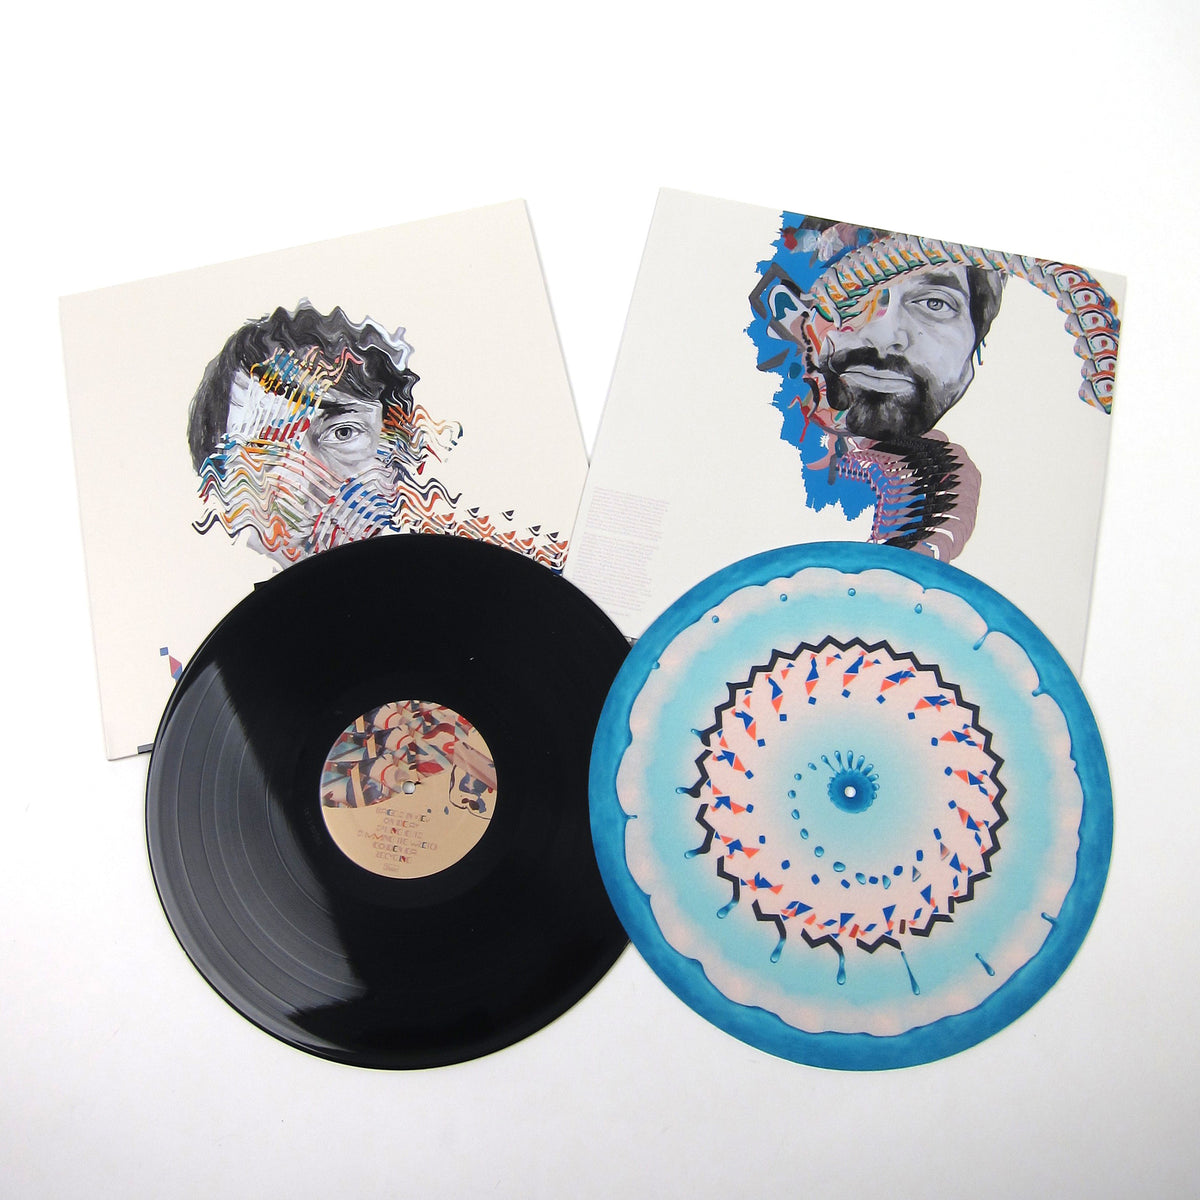 Animal Collective: Painting With Vinyl LP + Free Zoetropic Slipmat